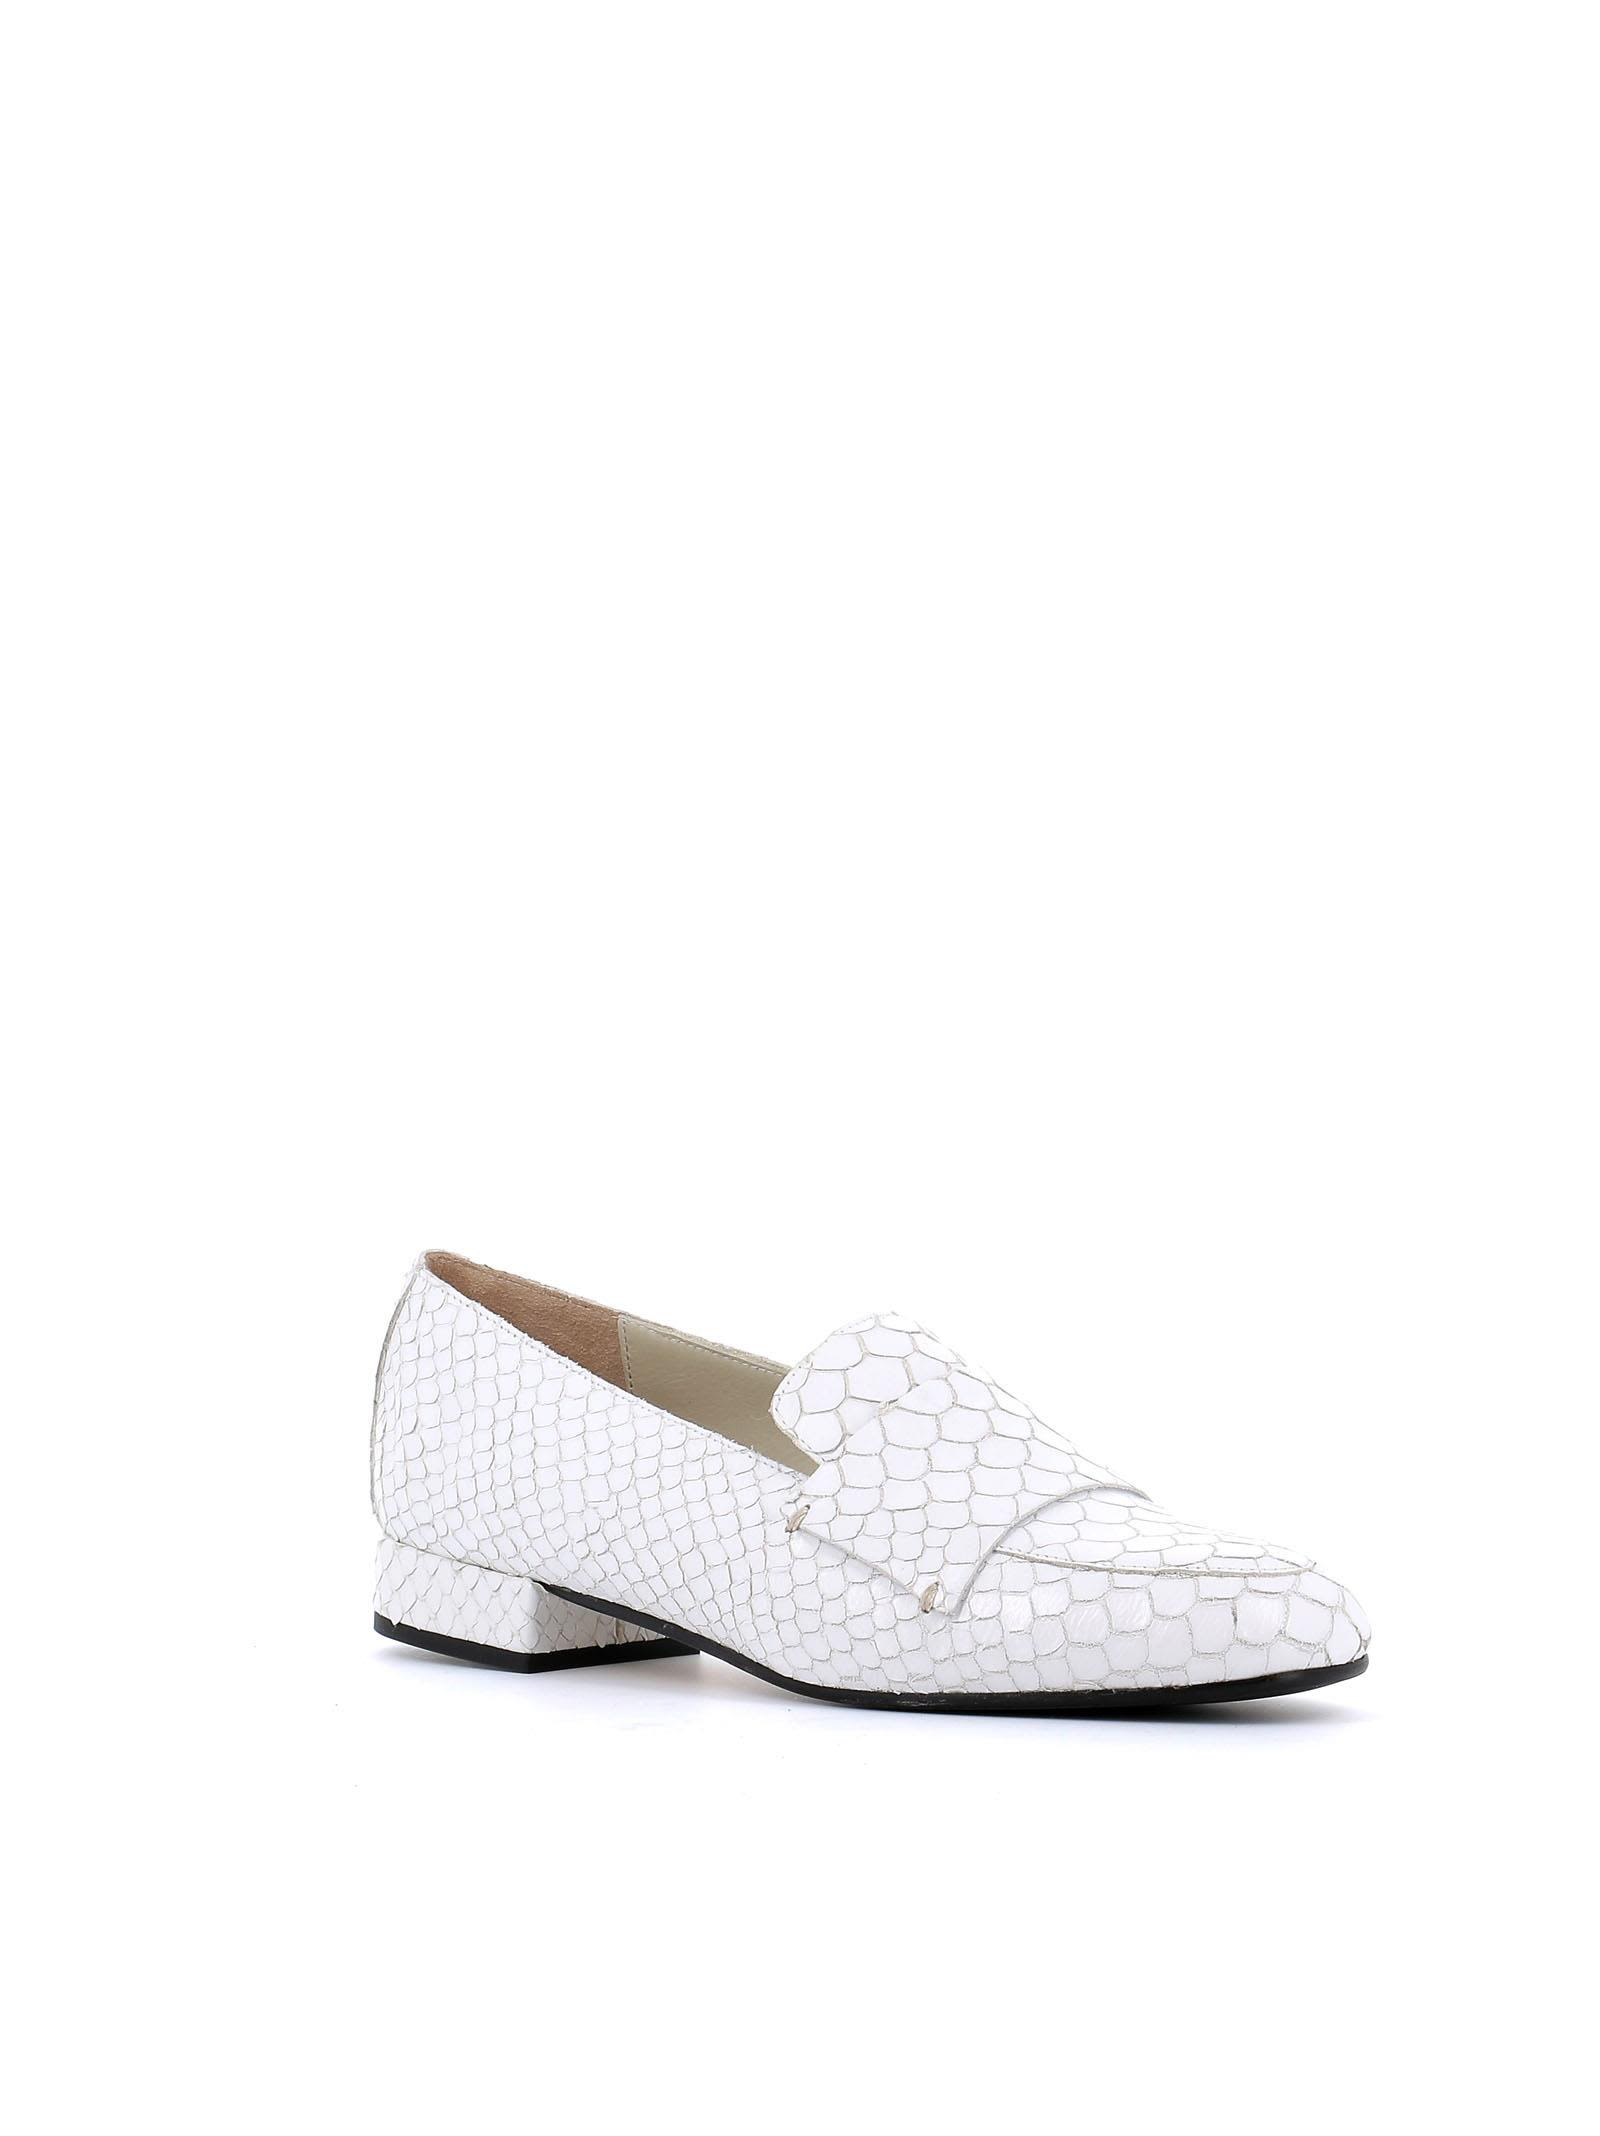 Winnie loafers - White ATP Atelier 7yP4ze0d